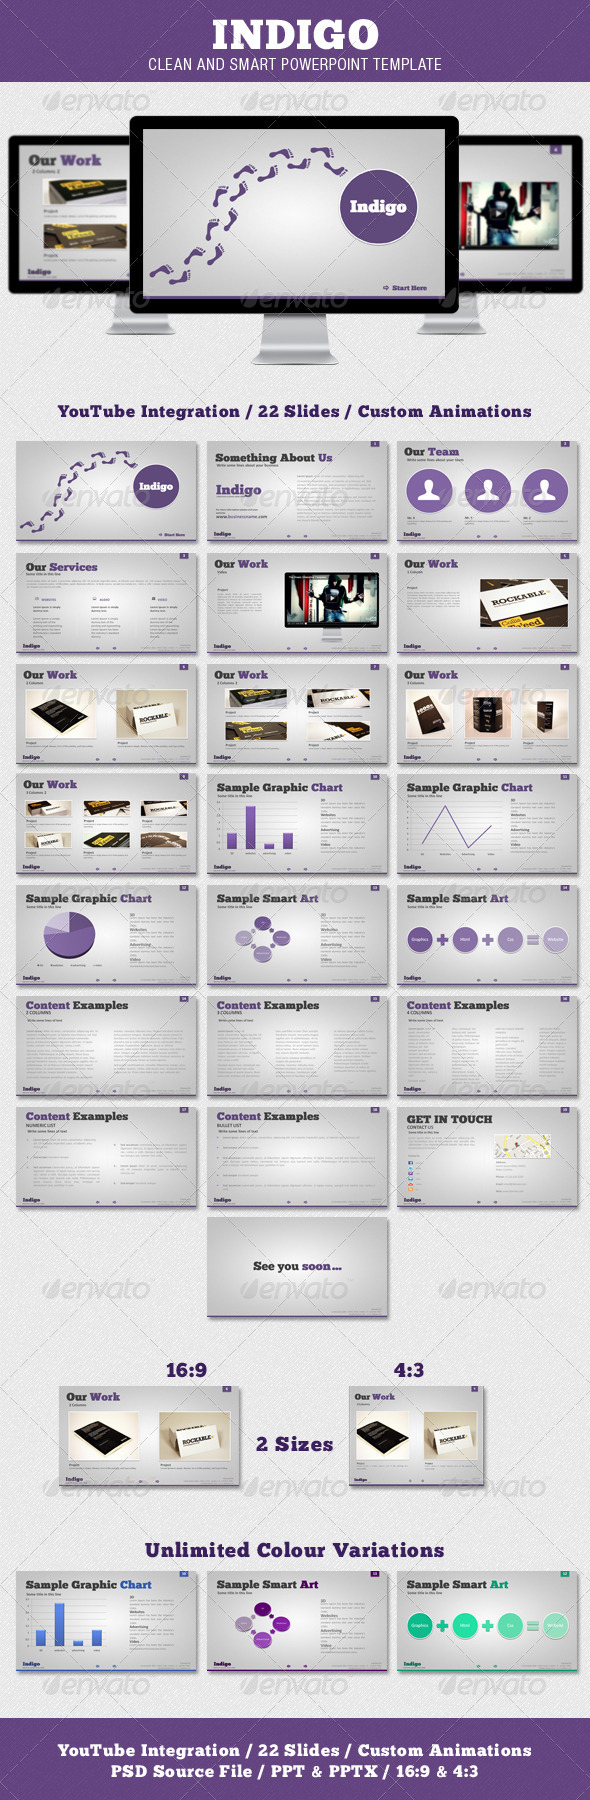 GraphicRiver Indigo Clean and Smart Powerpoint Template 1283035